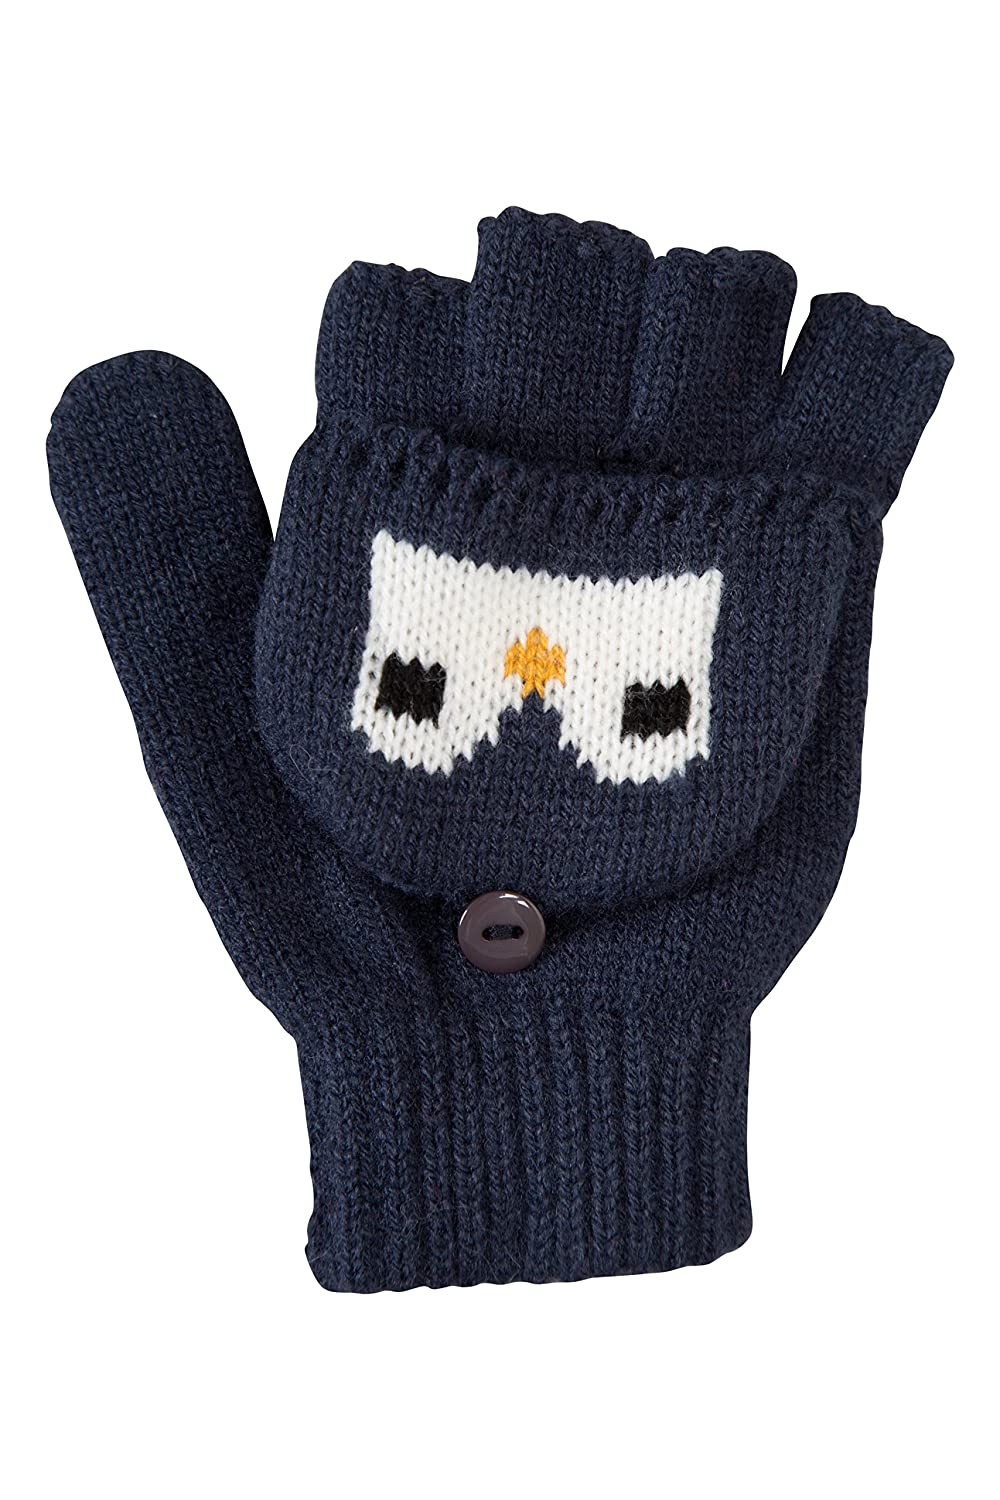 Mountain Warehouse Penguin Knitted Kids Glove - Warm, Lightweight, Knitted & Elasticised Band, Stretches for a Comfortable Fit - Great when out & about